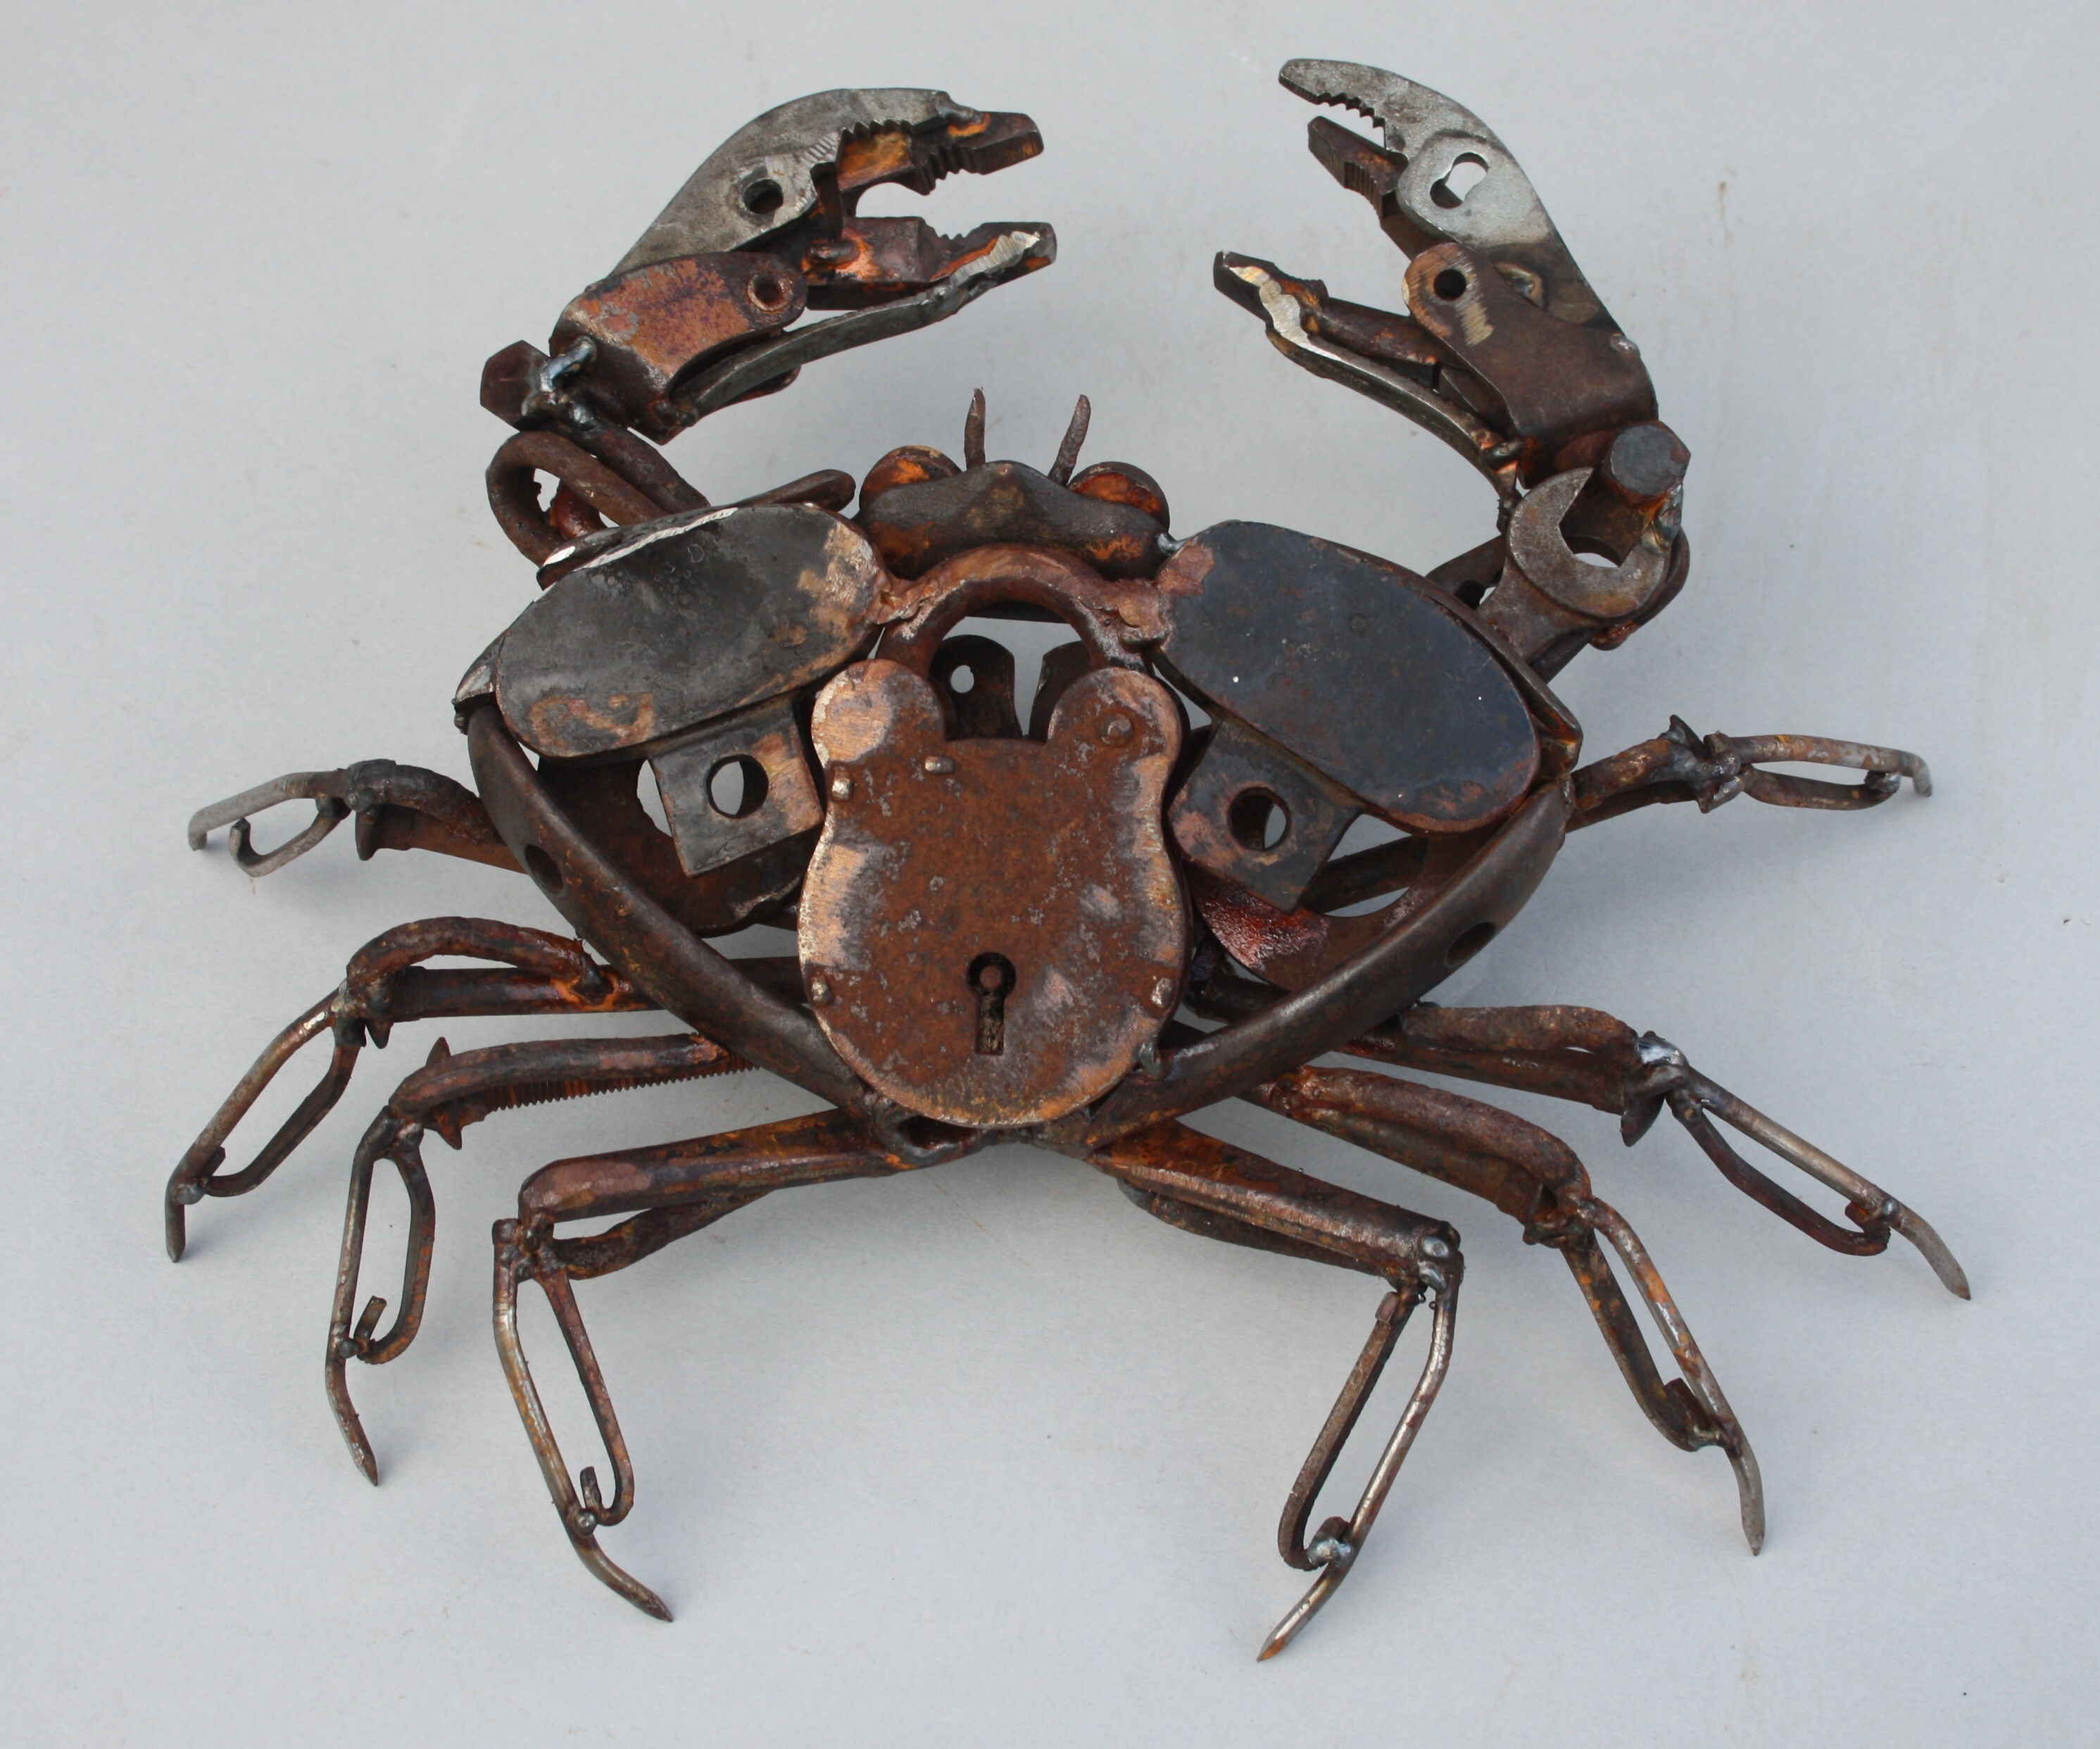 <p>Padlock Crab by Harriet Mead</p>